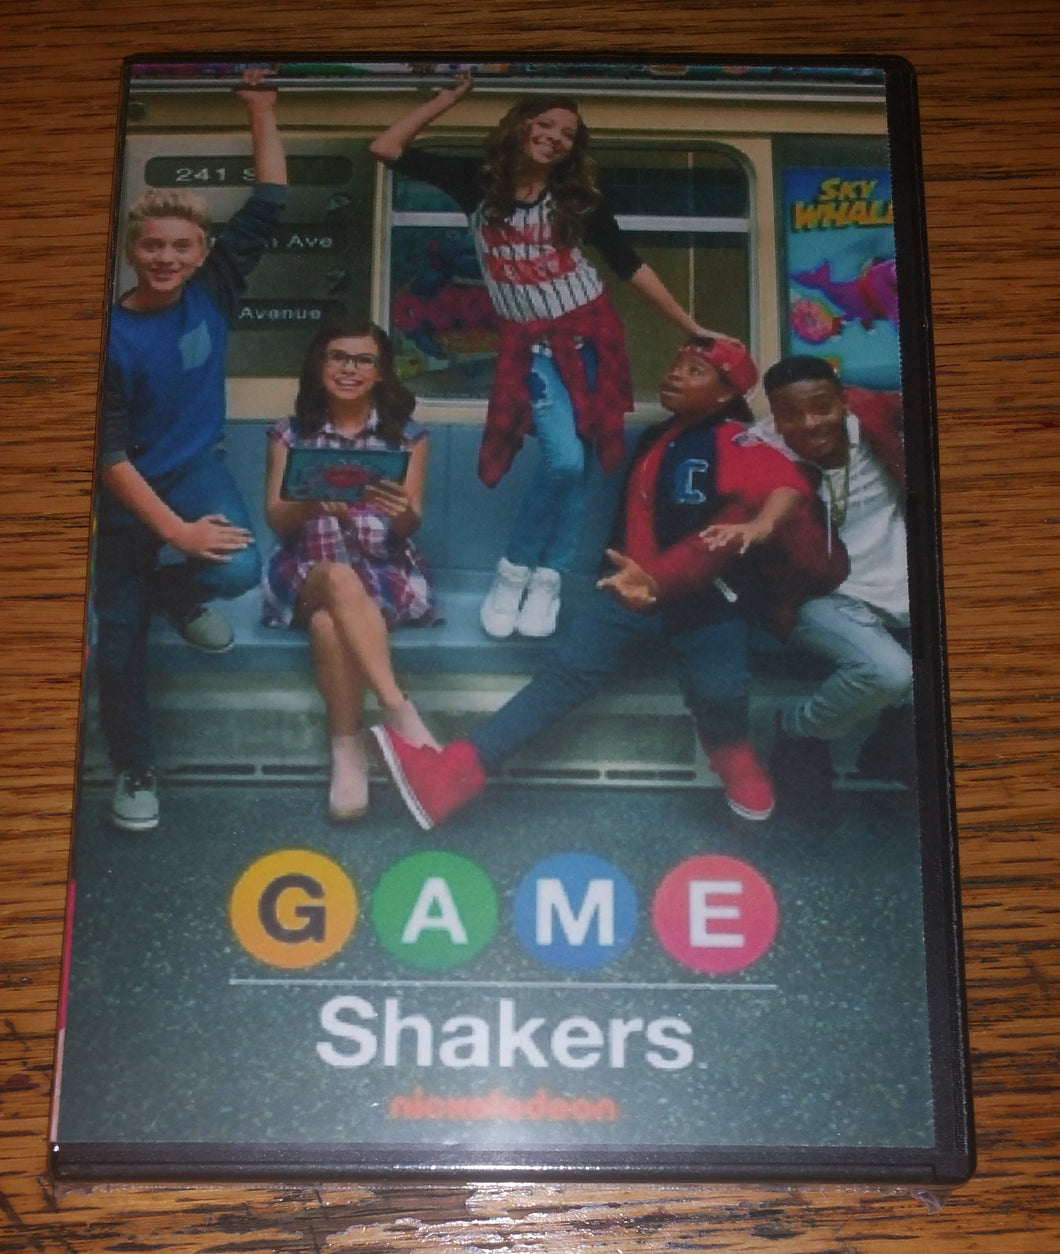 Game Shakers 2015 The Complete Tv Series On Dvd Cree Cicchino, Madisyn Shipman, Benjamin Flores, Jr